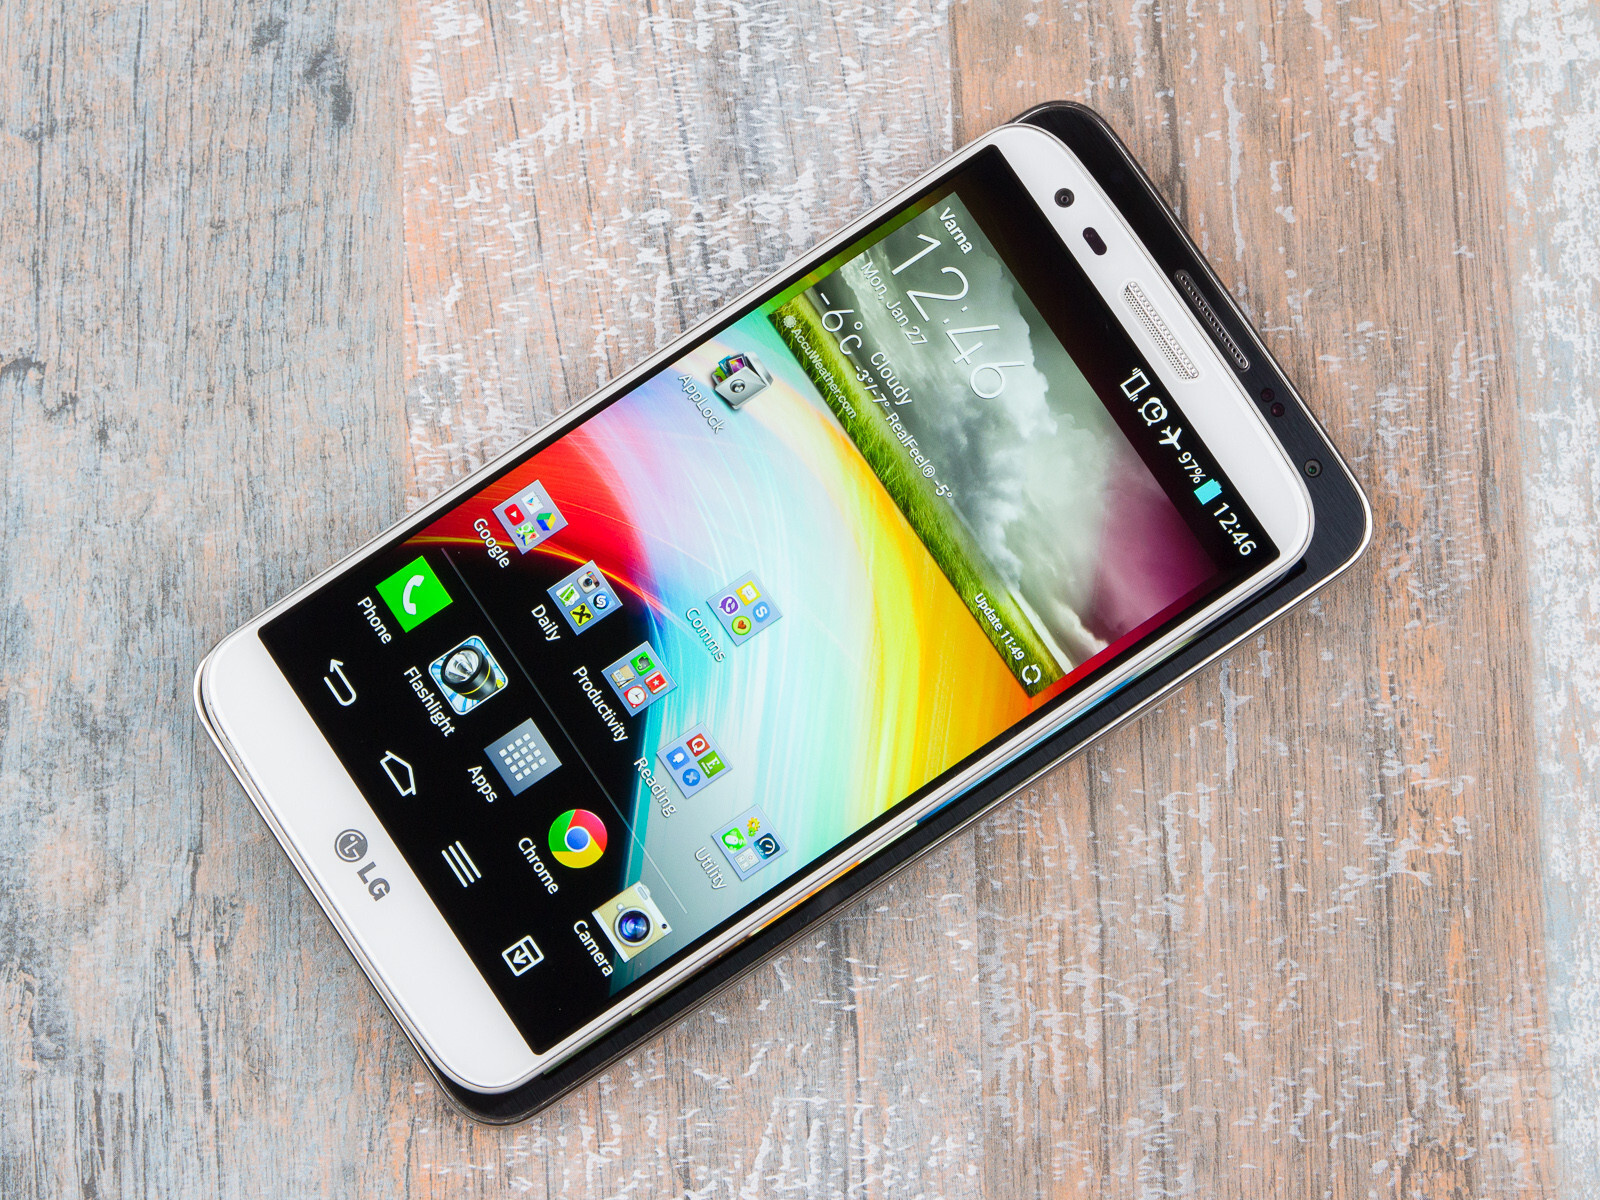 how to change app size on galaxy s5 neo